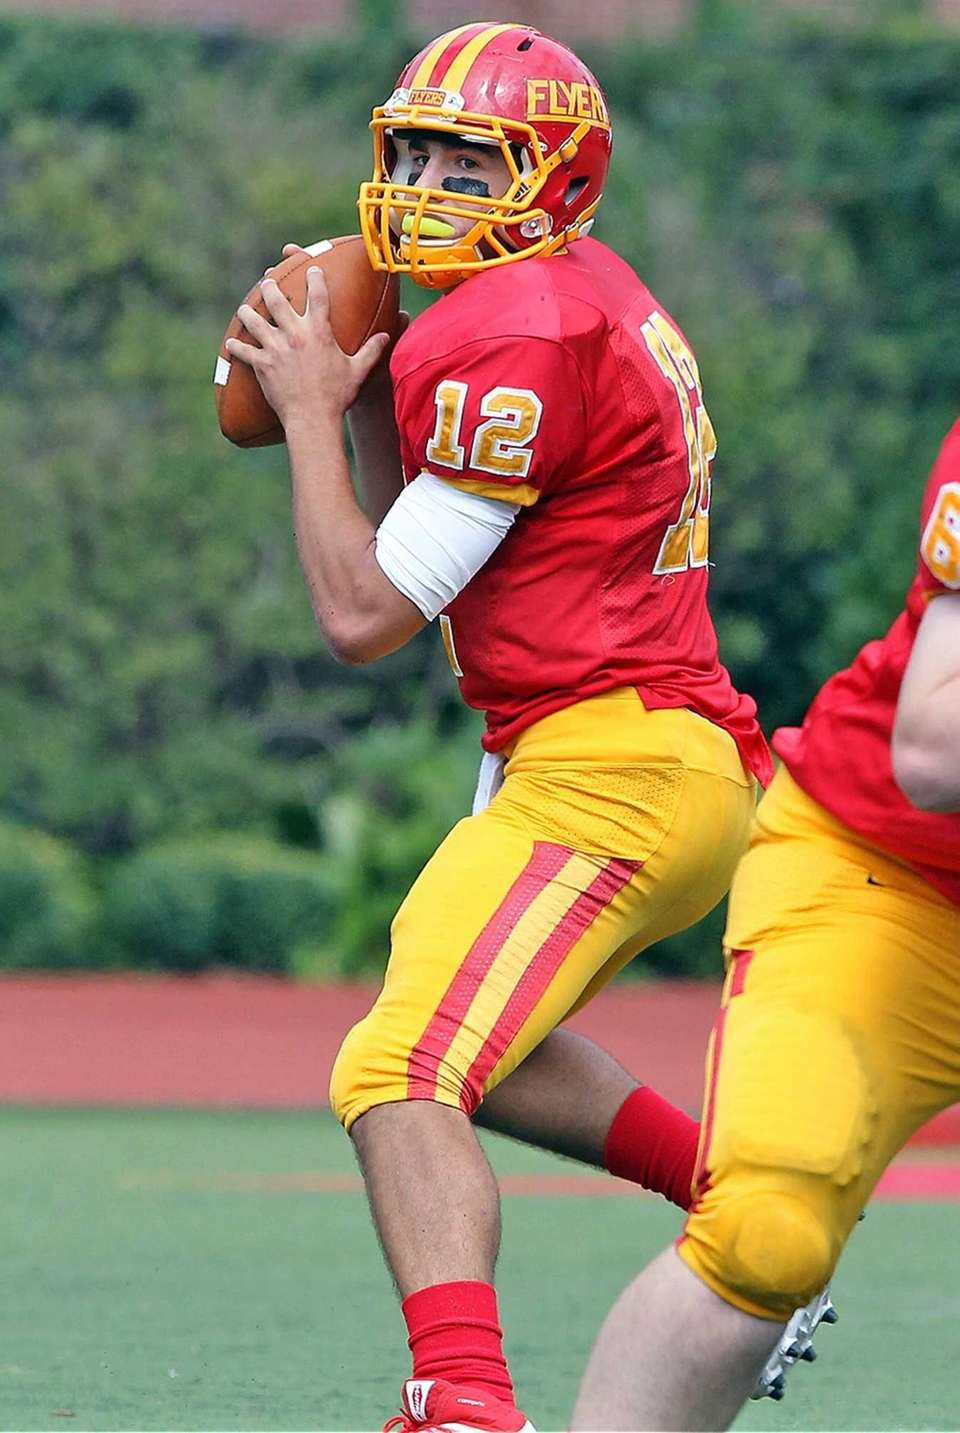 Chaminade's Sean Cerrone looks downfield during his team's